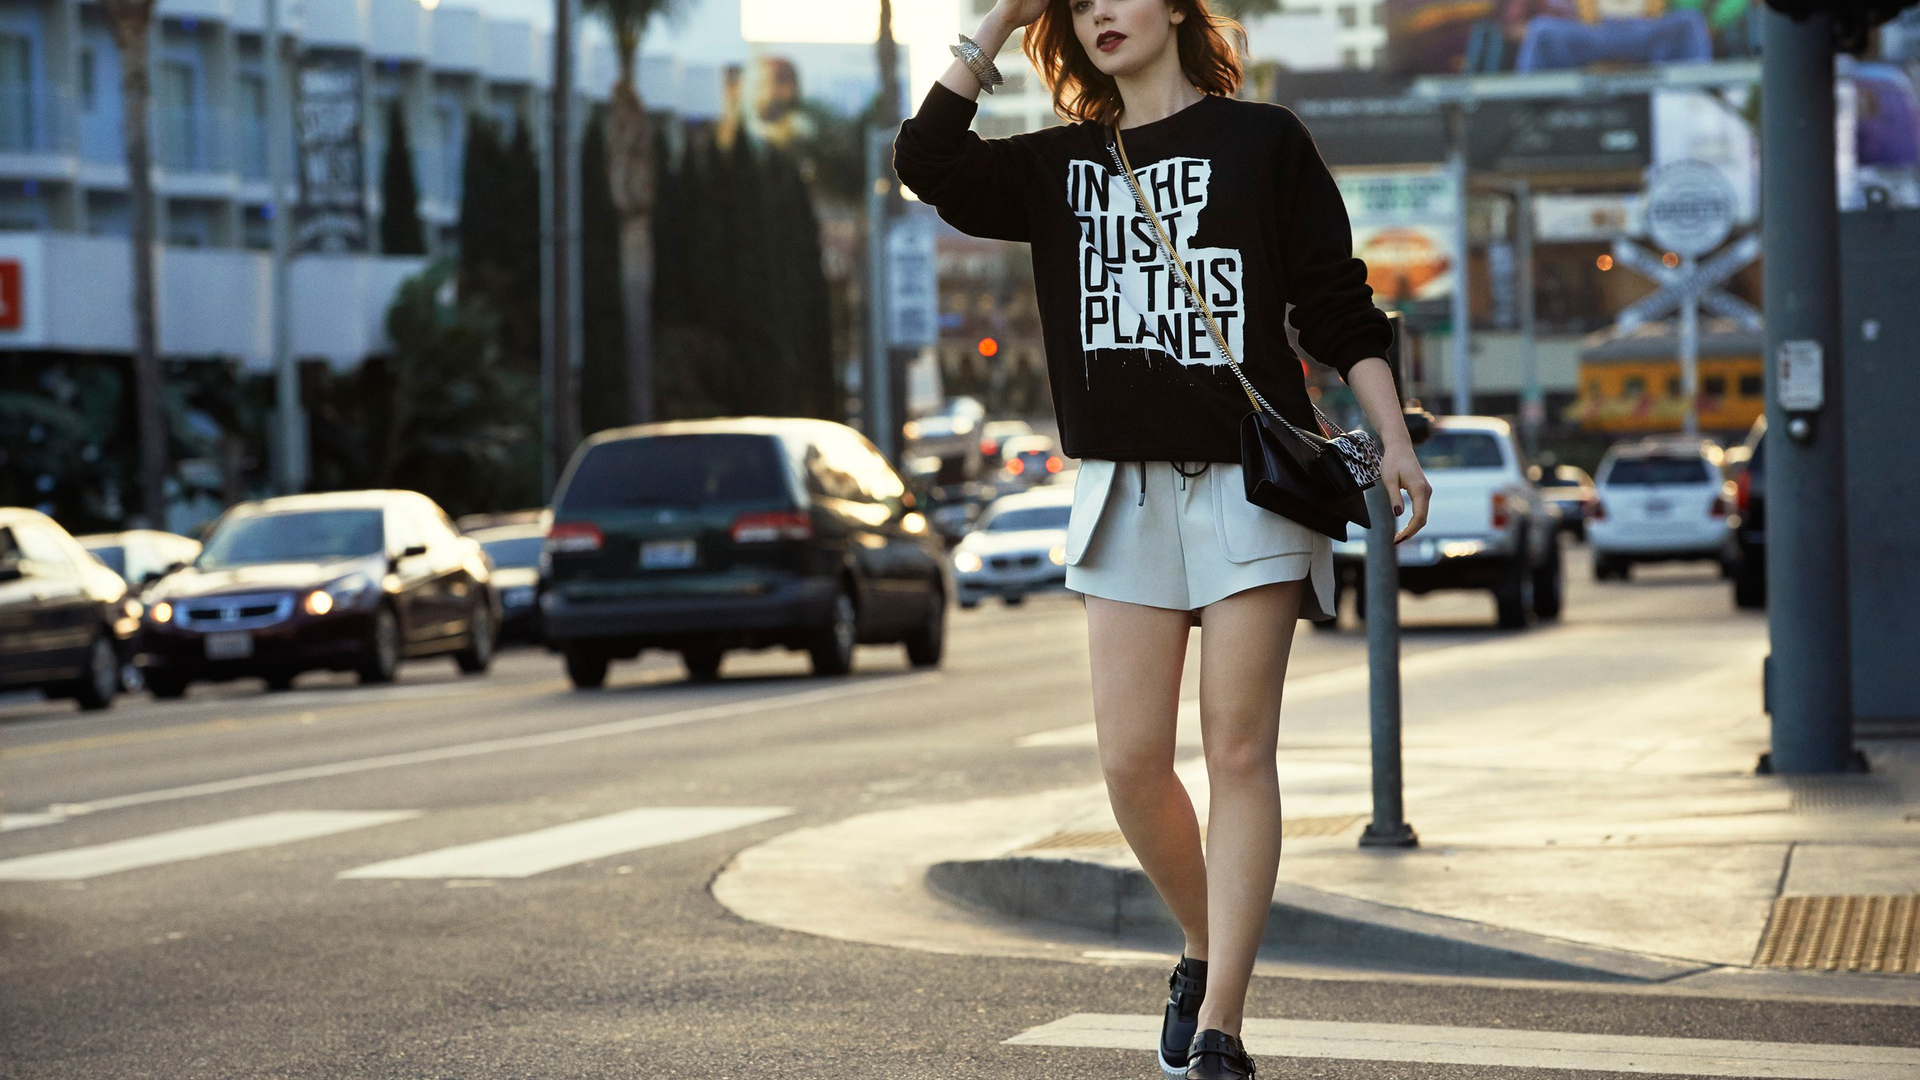 lily-collins-walking-on-street-8i.jpg